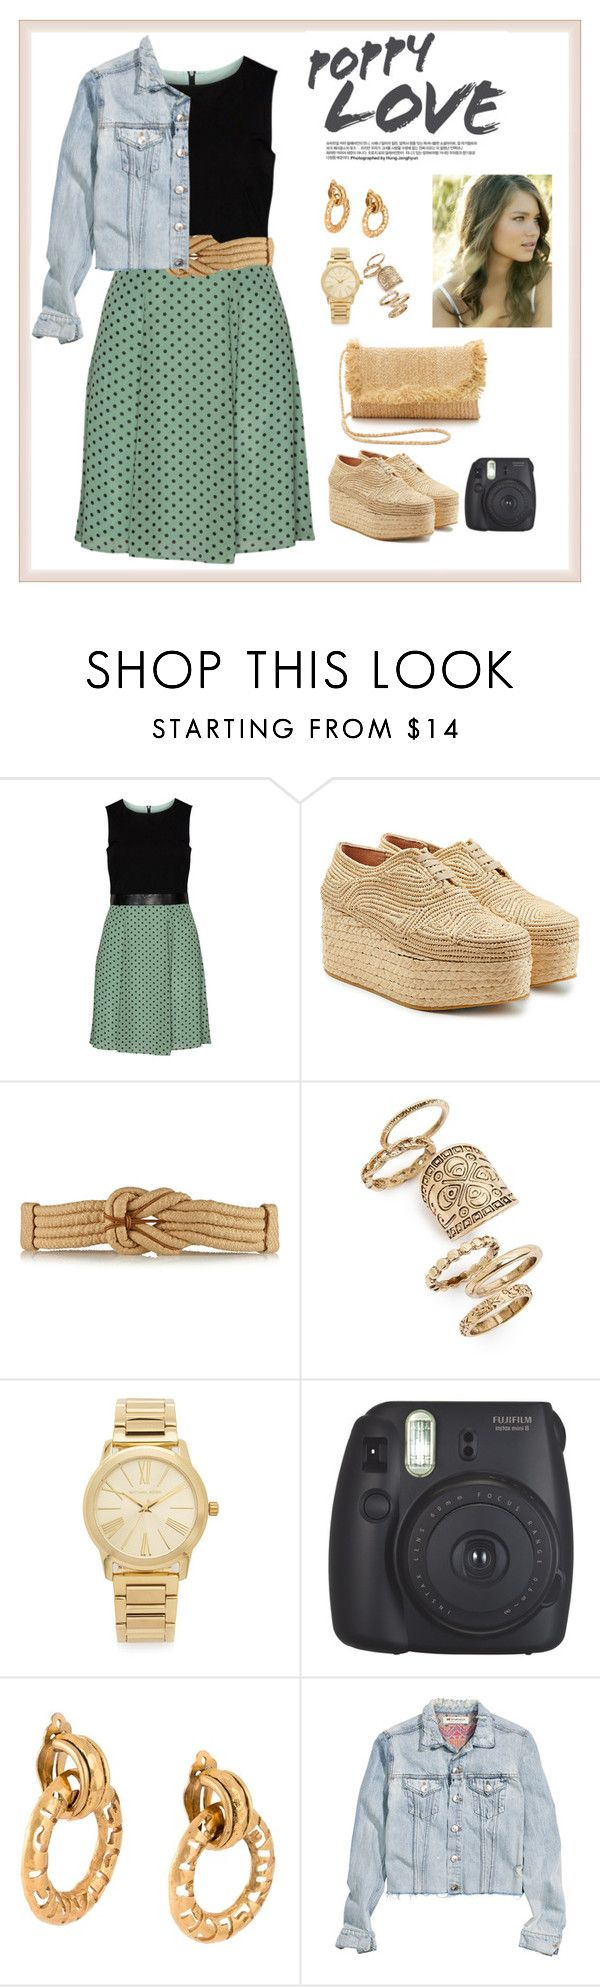 """Sin título #49"" by raertf ❤ liked on Polyvore featuring Manon Baptiste, Robert Clergerie, Valentino, Topshop, Michael Kors, Tara Lynn, Fujifilm, Chanel, H&M and Hat Attack"